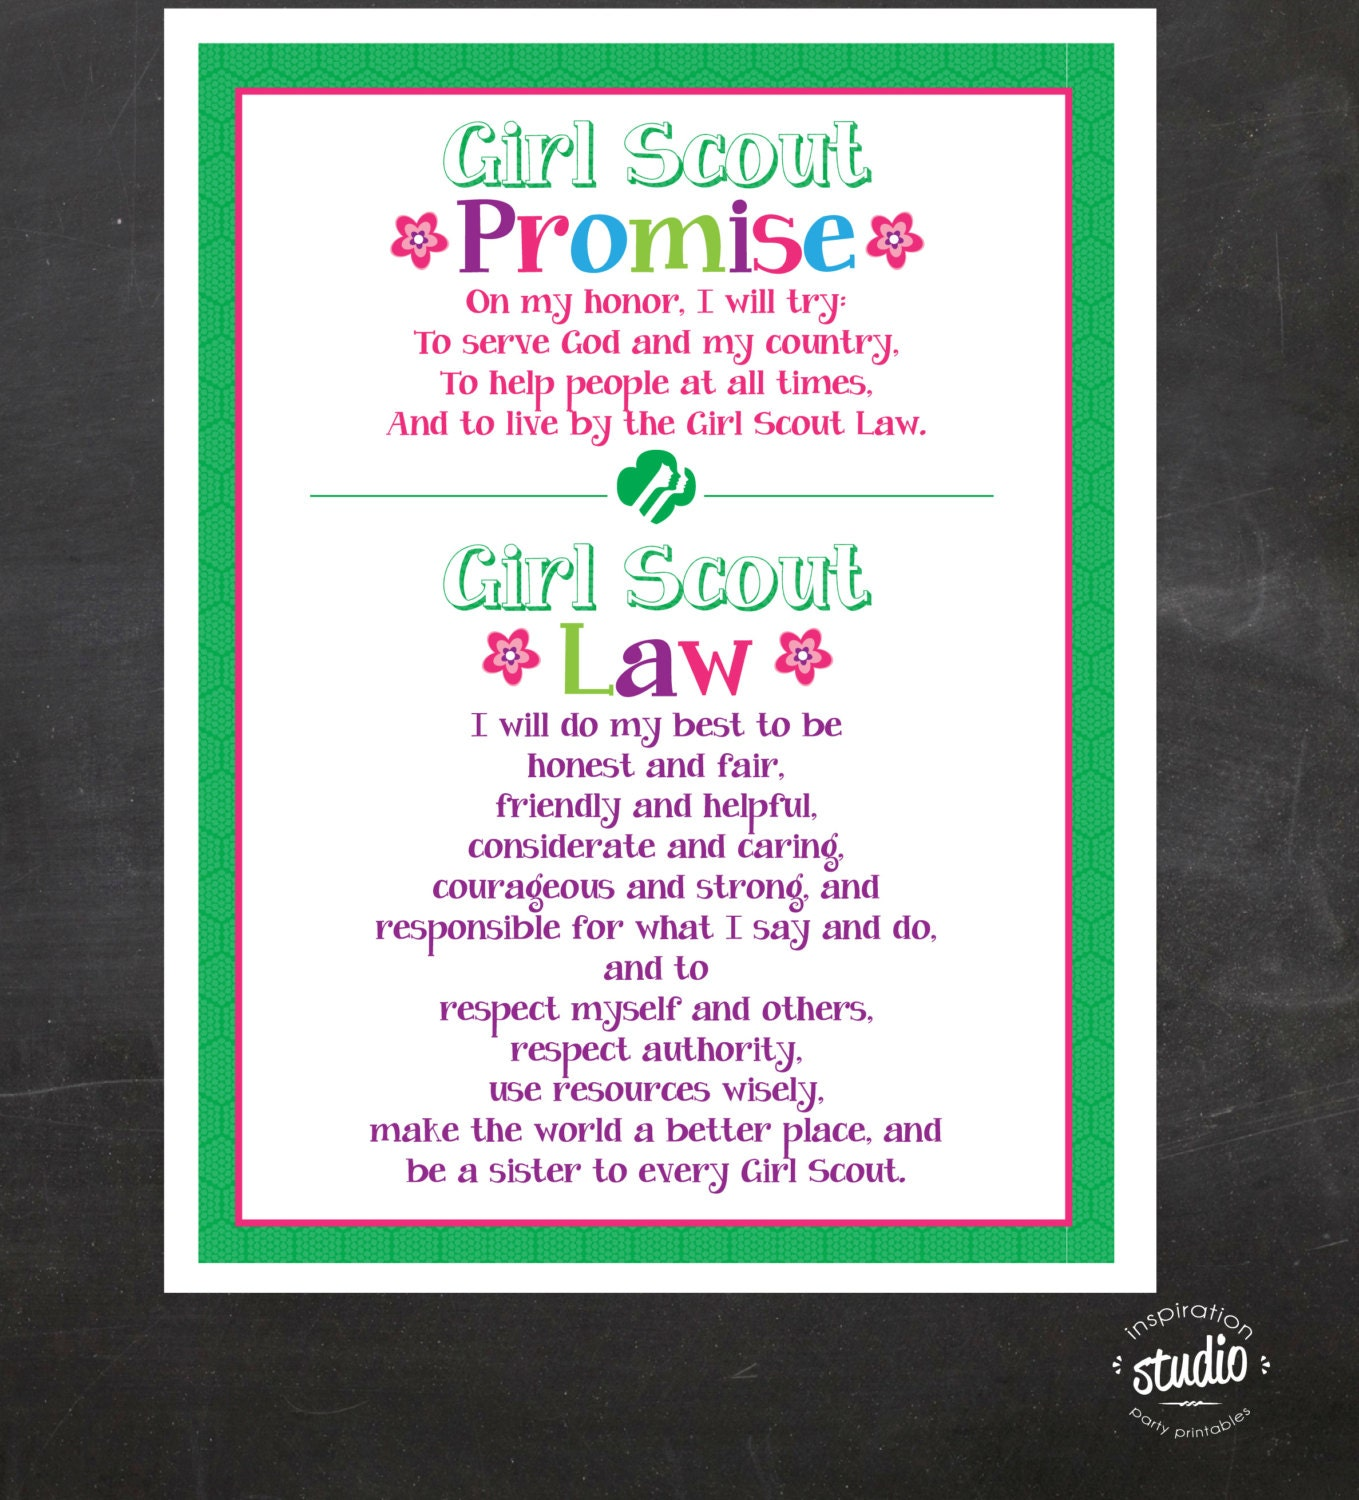 Sassy image with regard to girl scouts promise printable